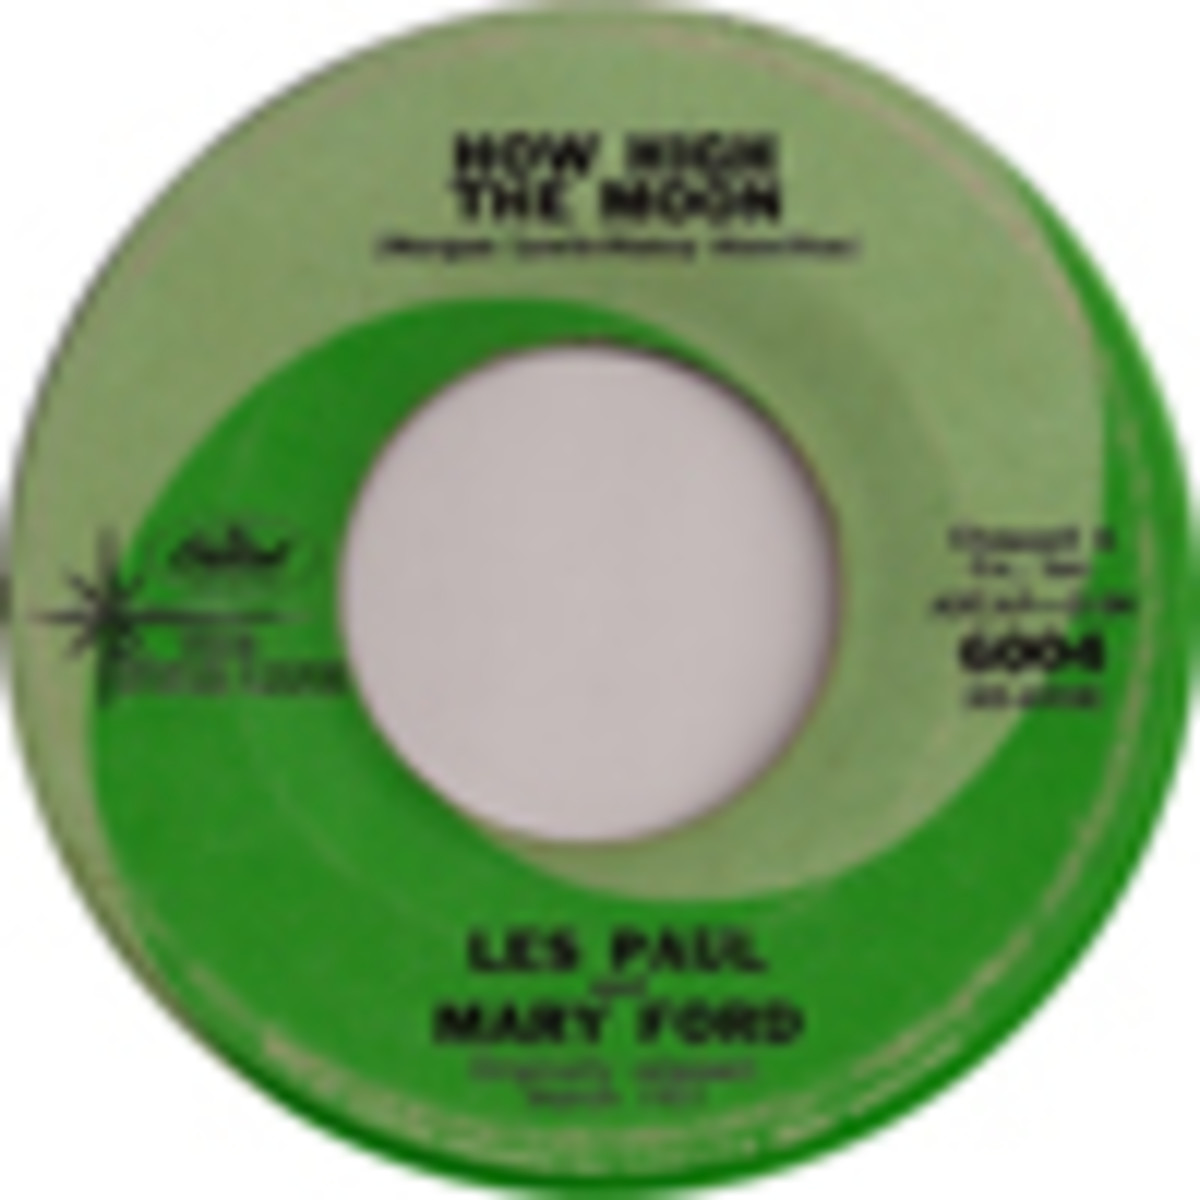 Les Paul and Mary Ford How High The Moon